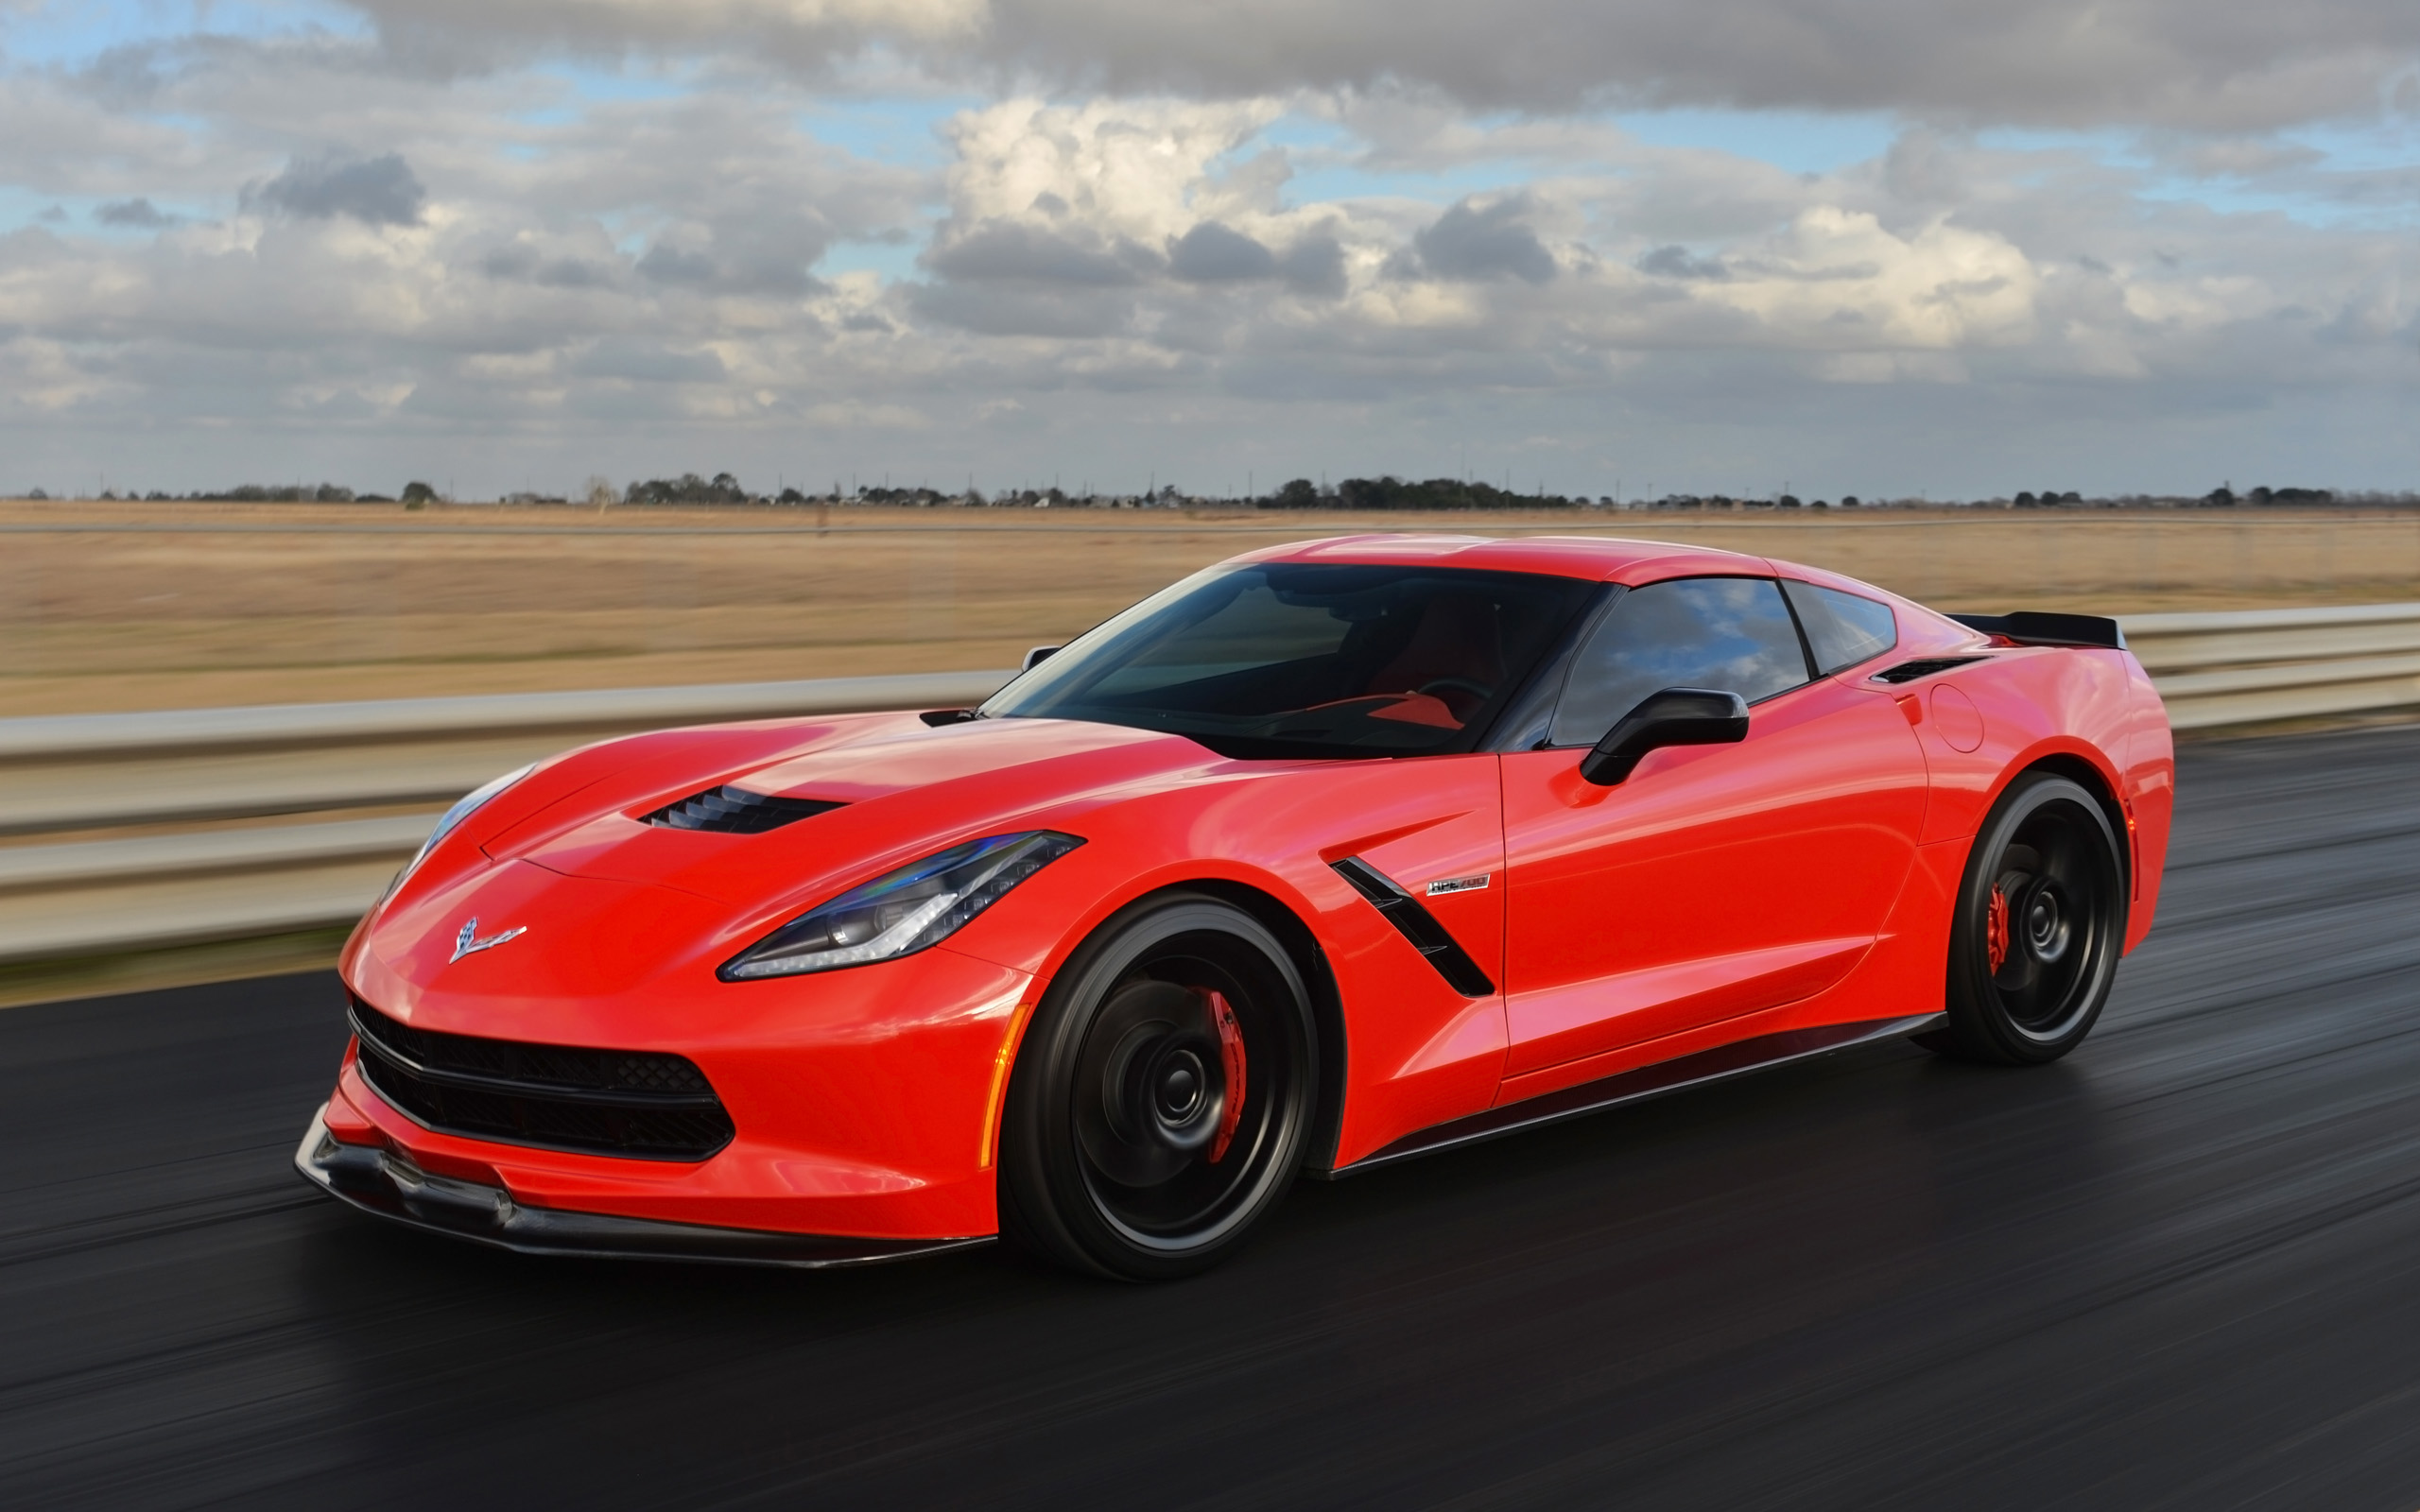 2014 corvette stingray photos picture size 2560x1600 posted by